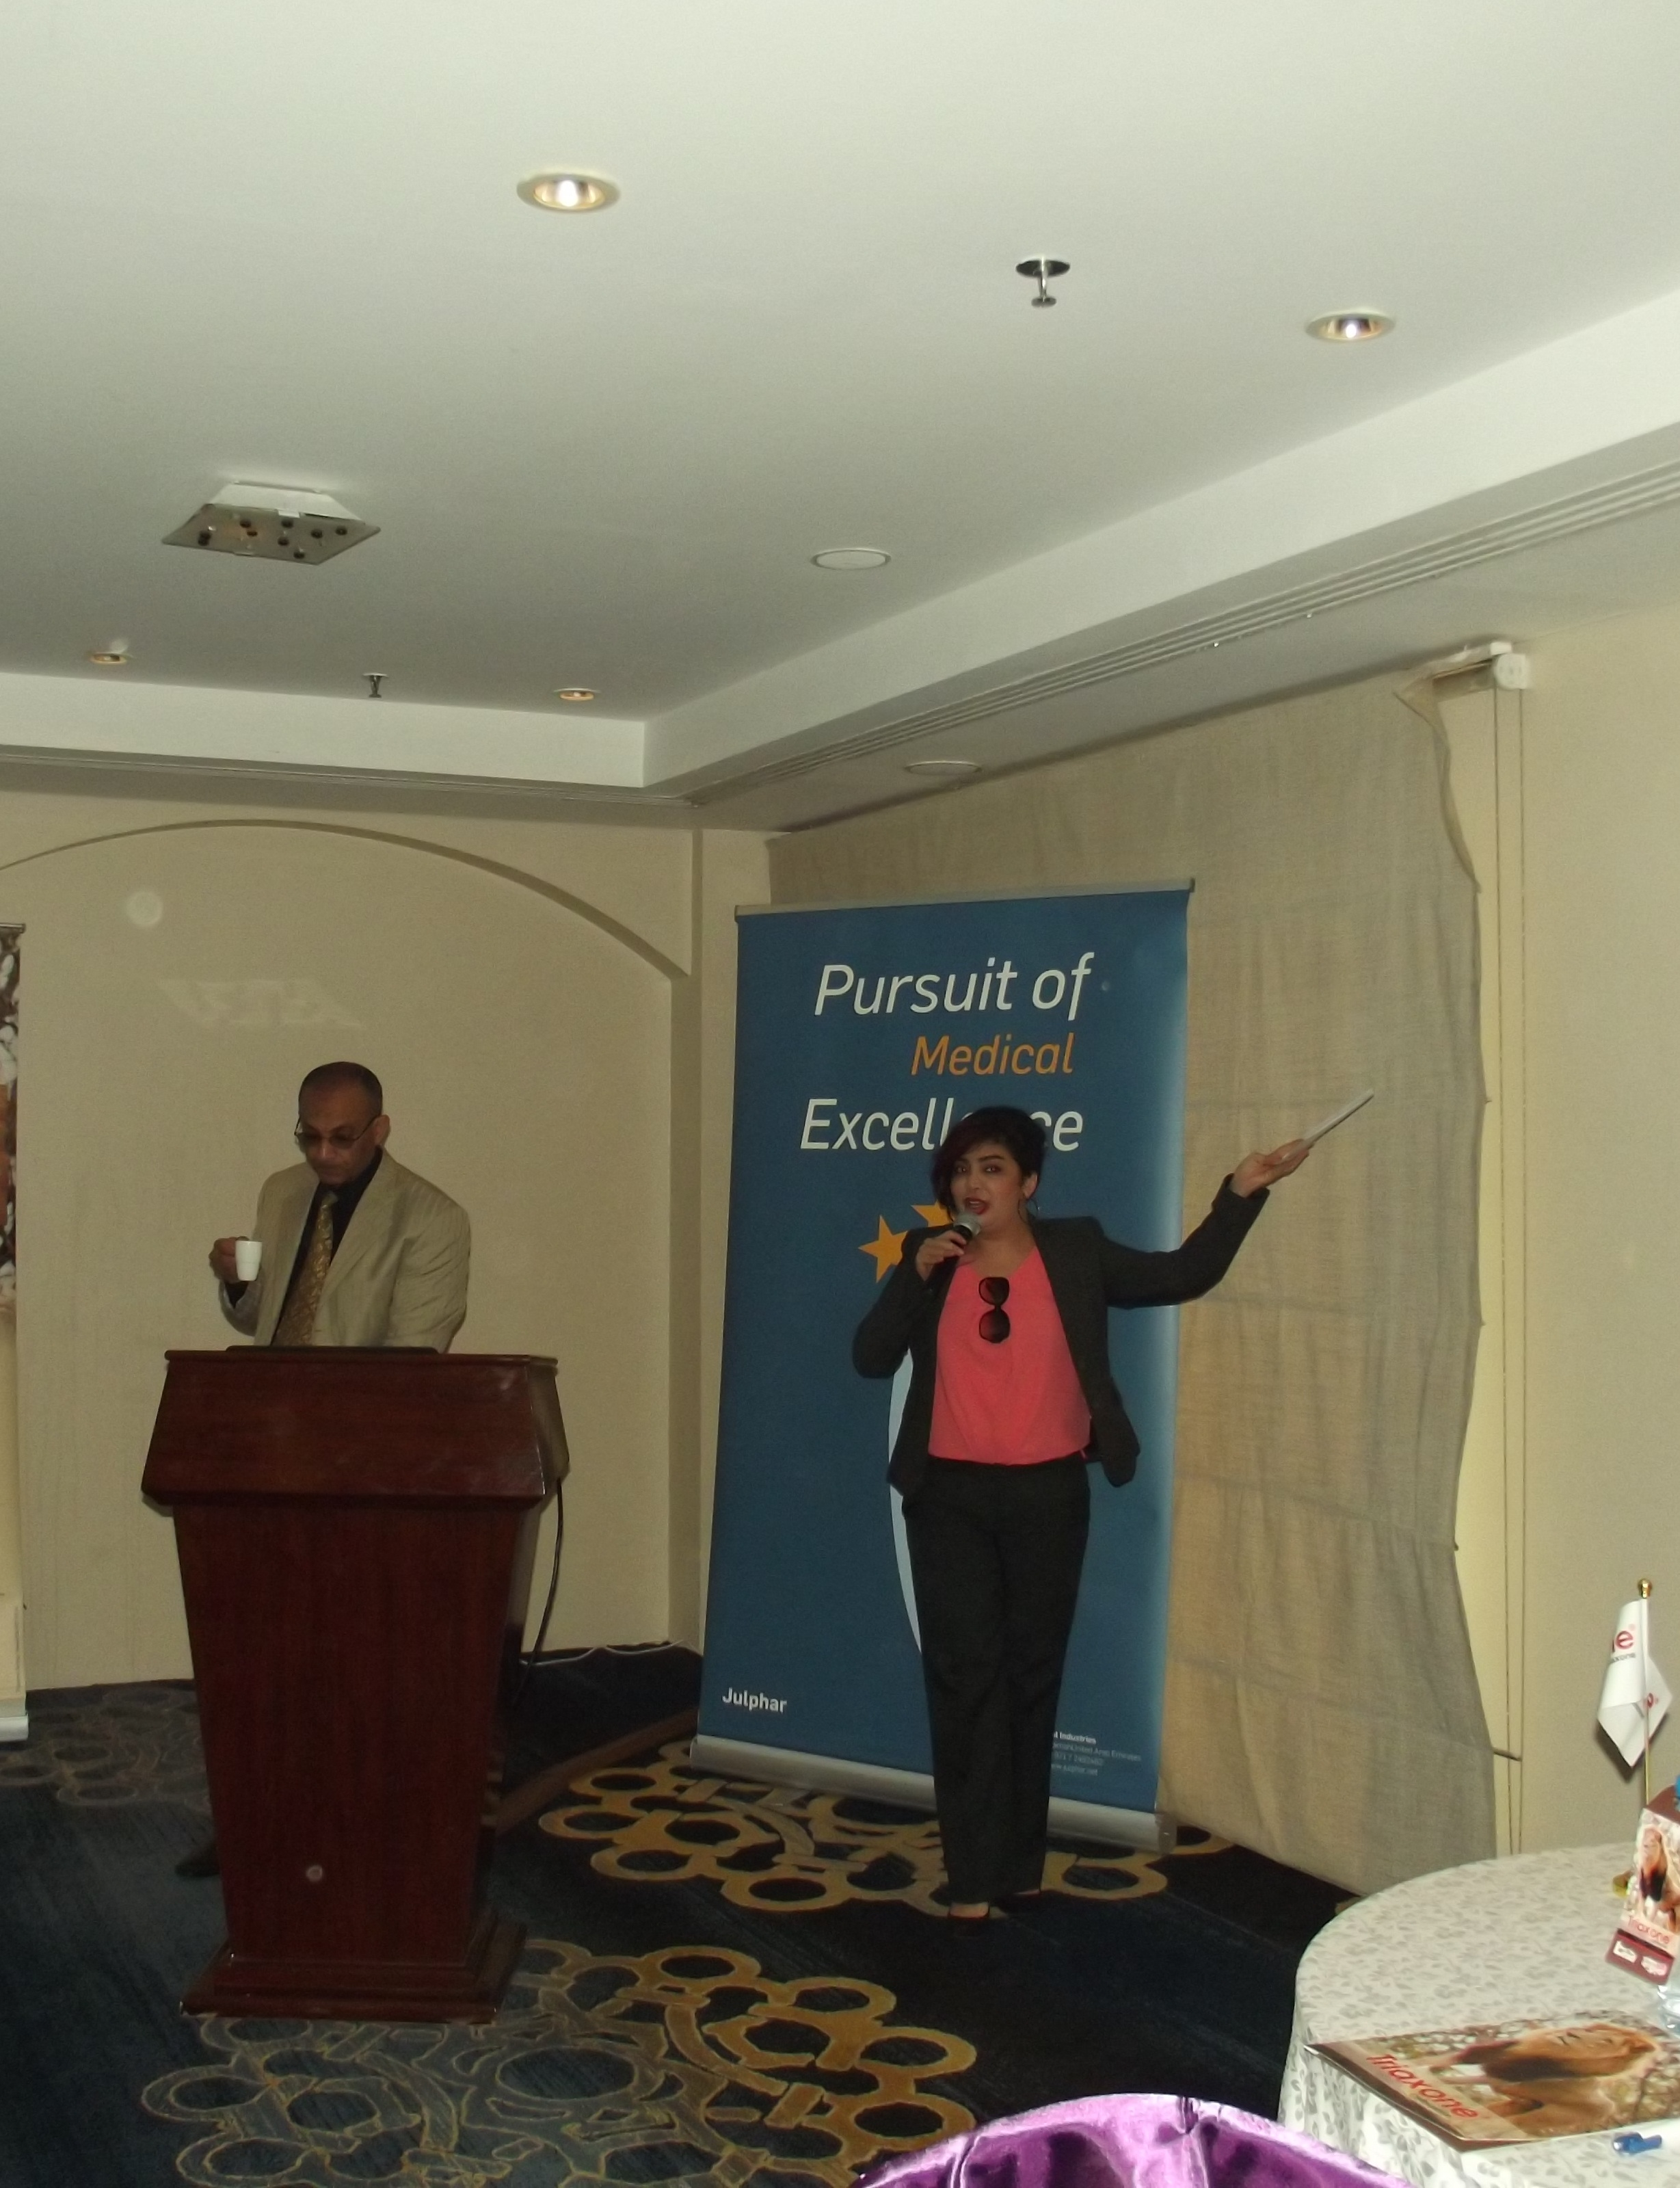 Julphar Launches Pursuit of Medical Excellence Program in Kuwait